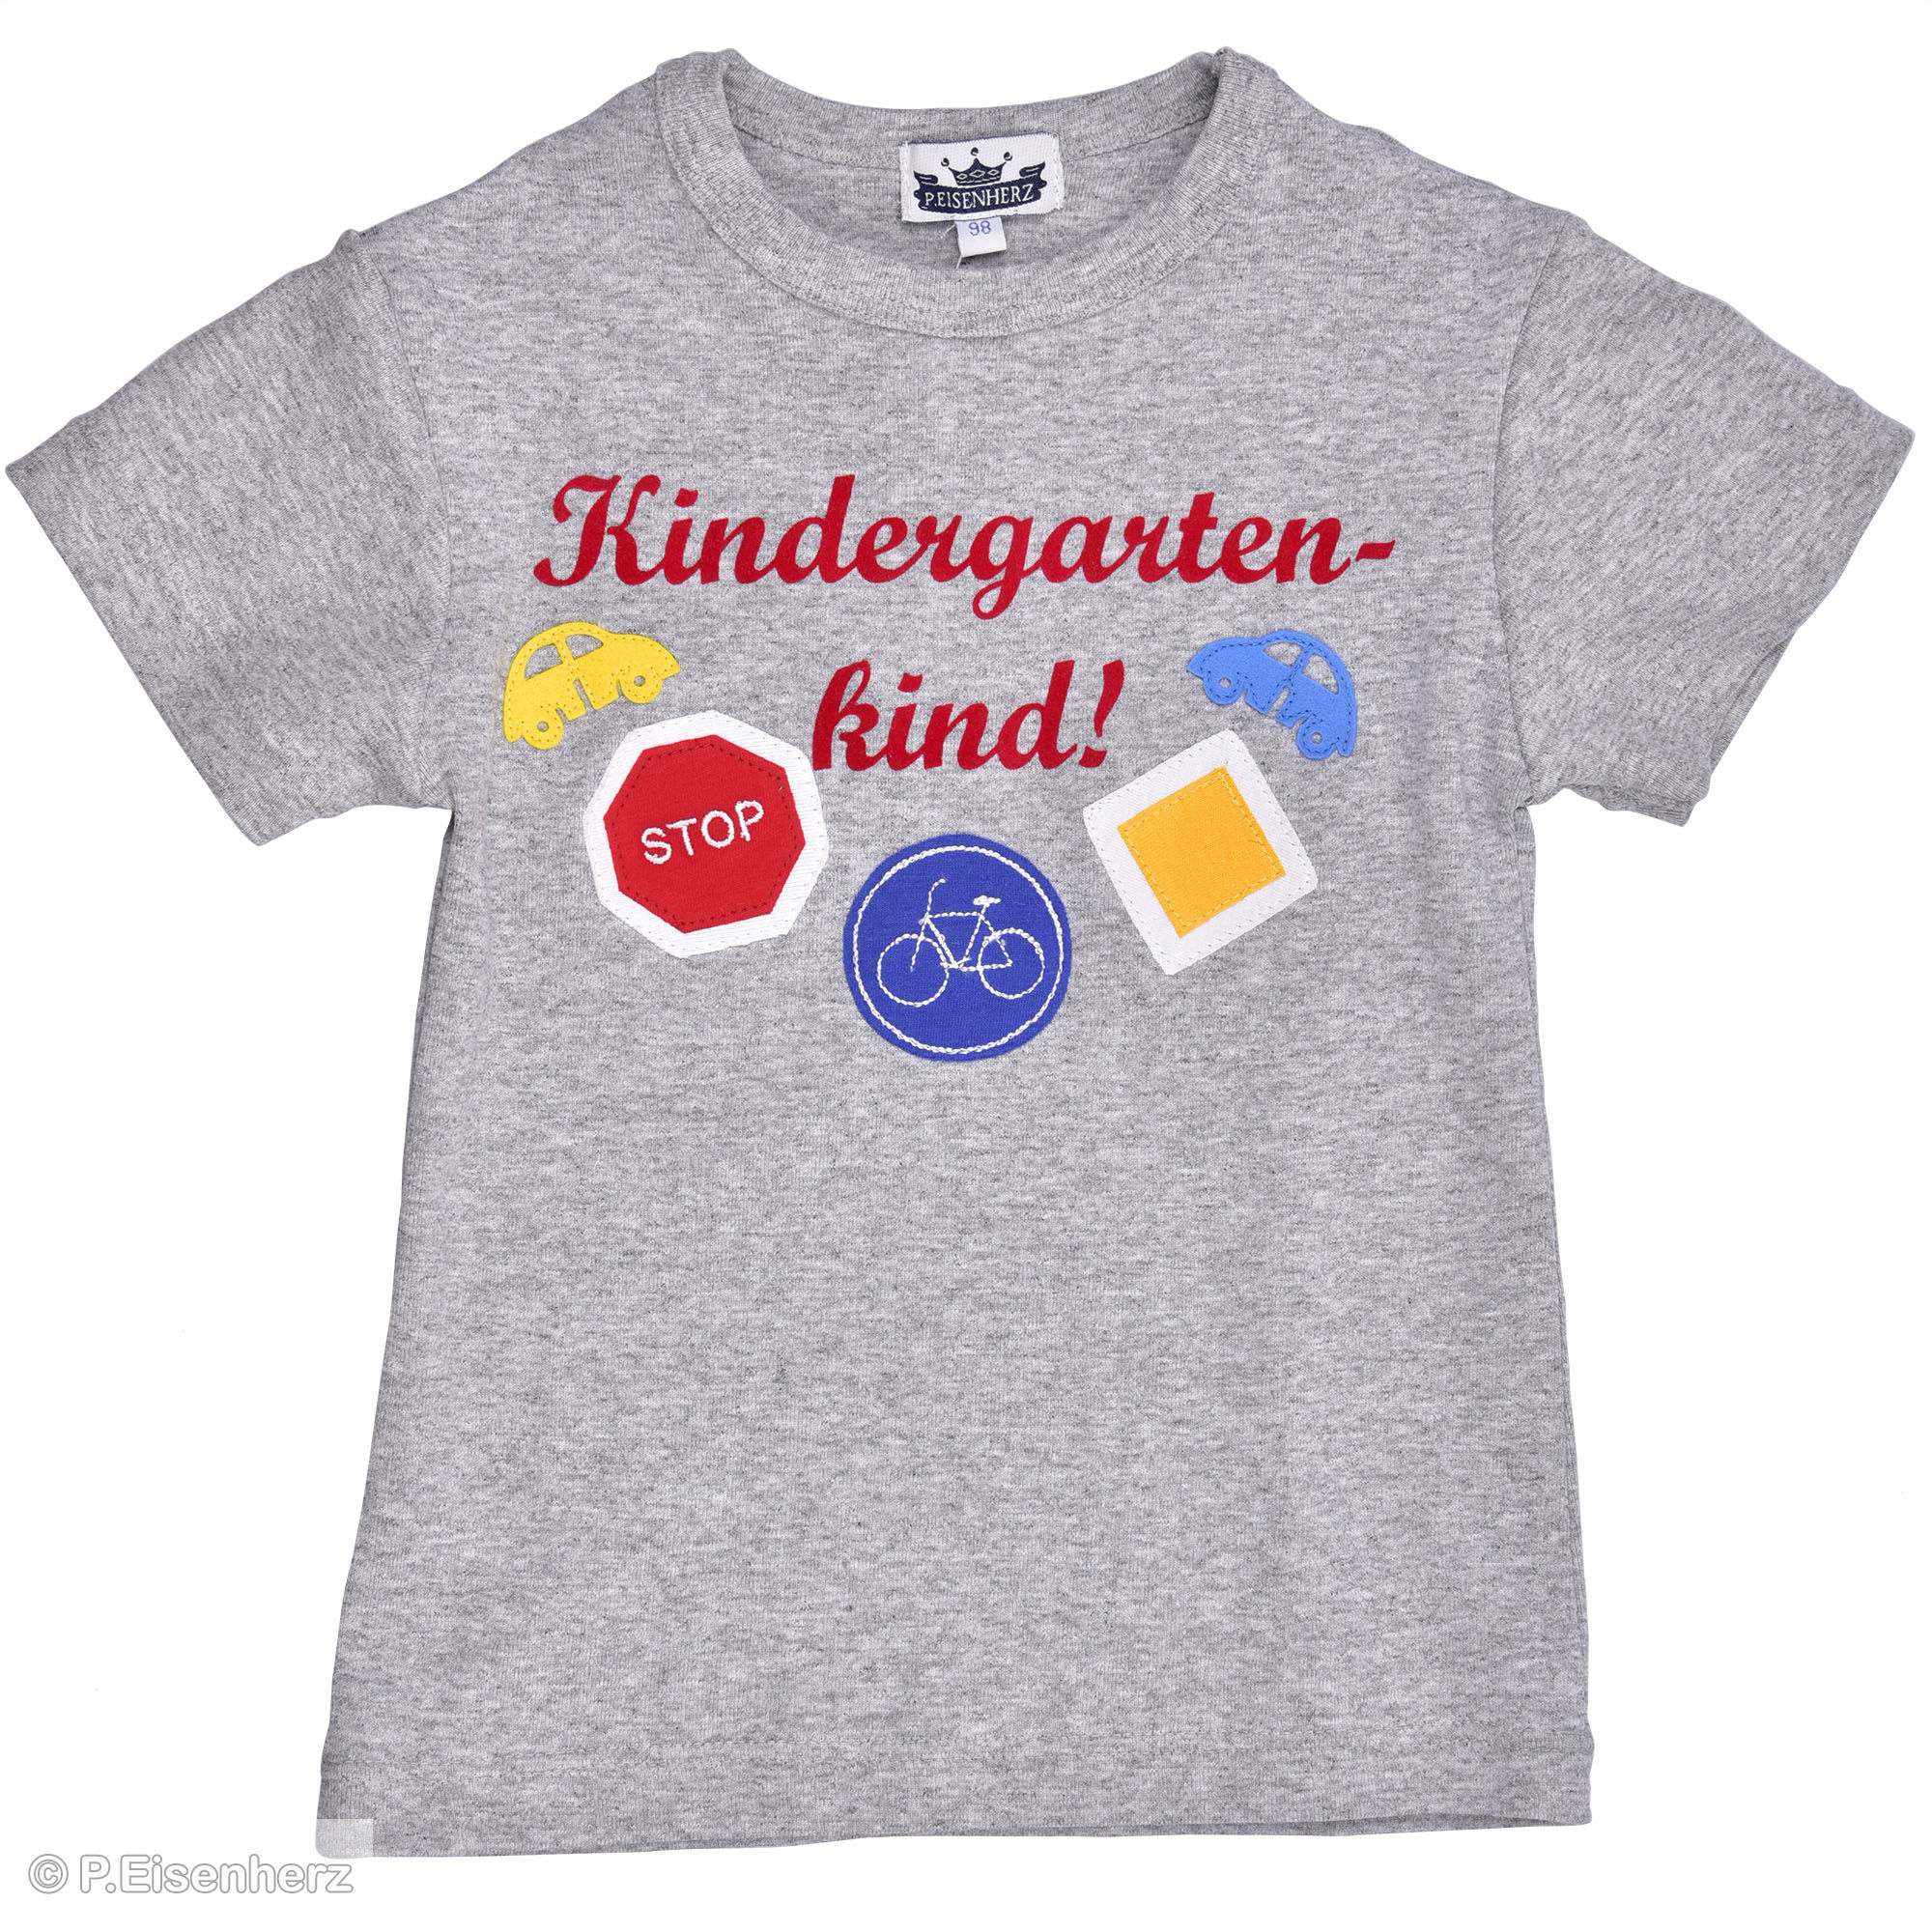 t shirt kindergartenkind mit verkehrszeichen grau 29 90. Black Bedroom Furniture Sets. Home Design Ideas